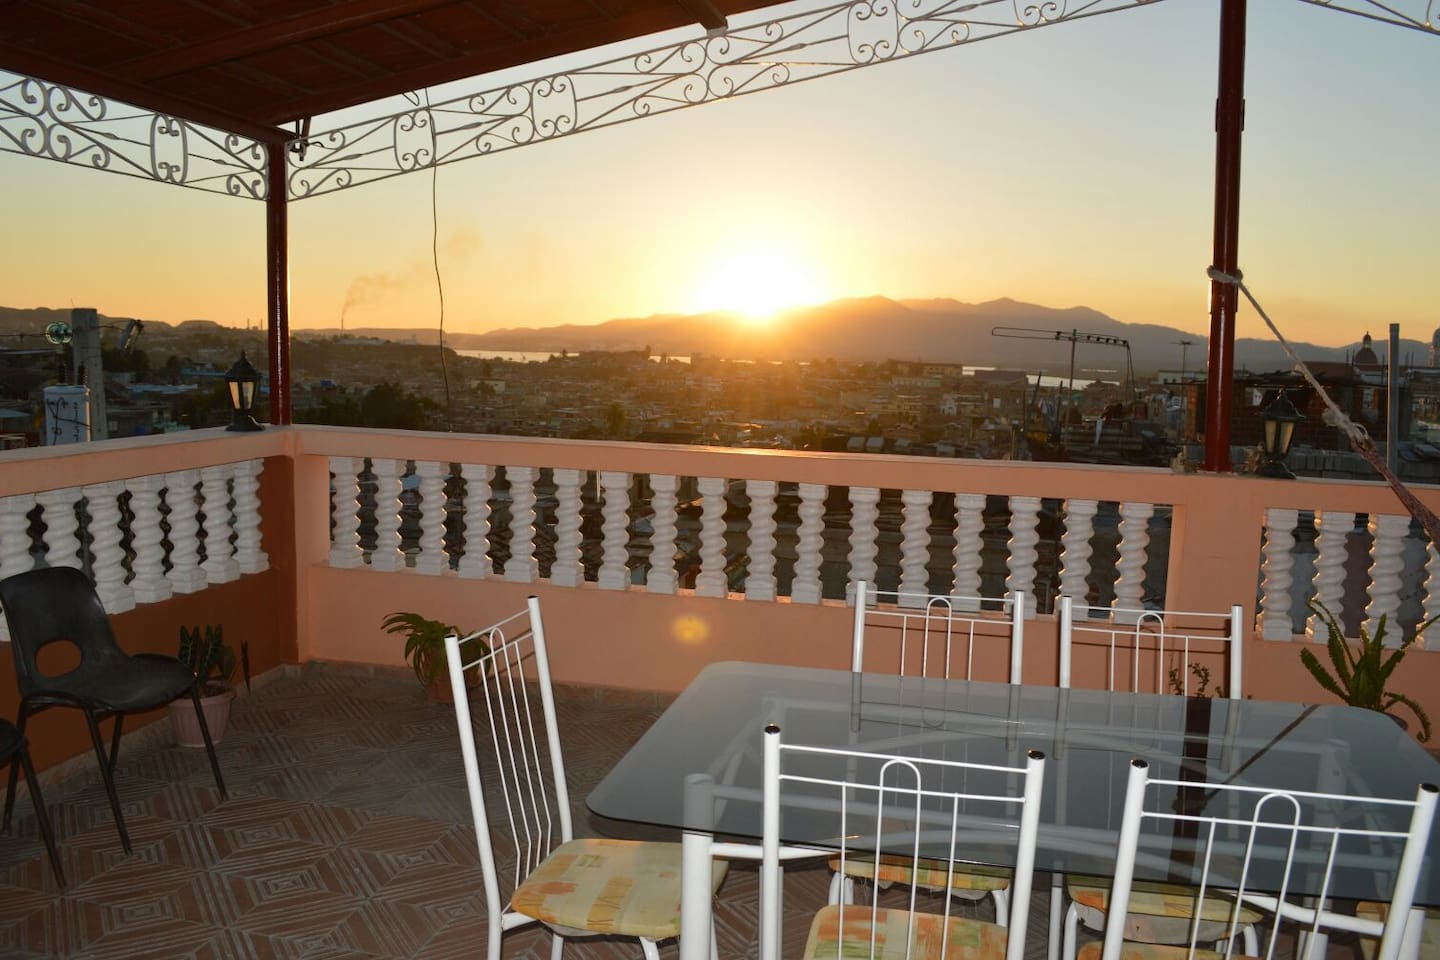 Enjoy OUR great breakfast in our terrace with amazing views of the city.